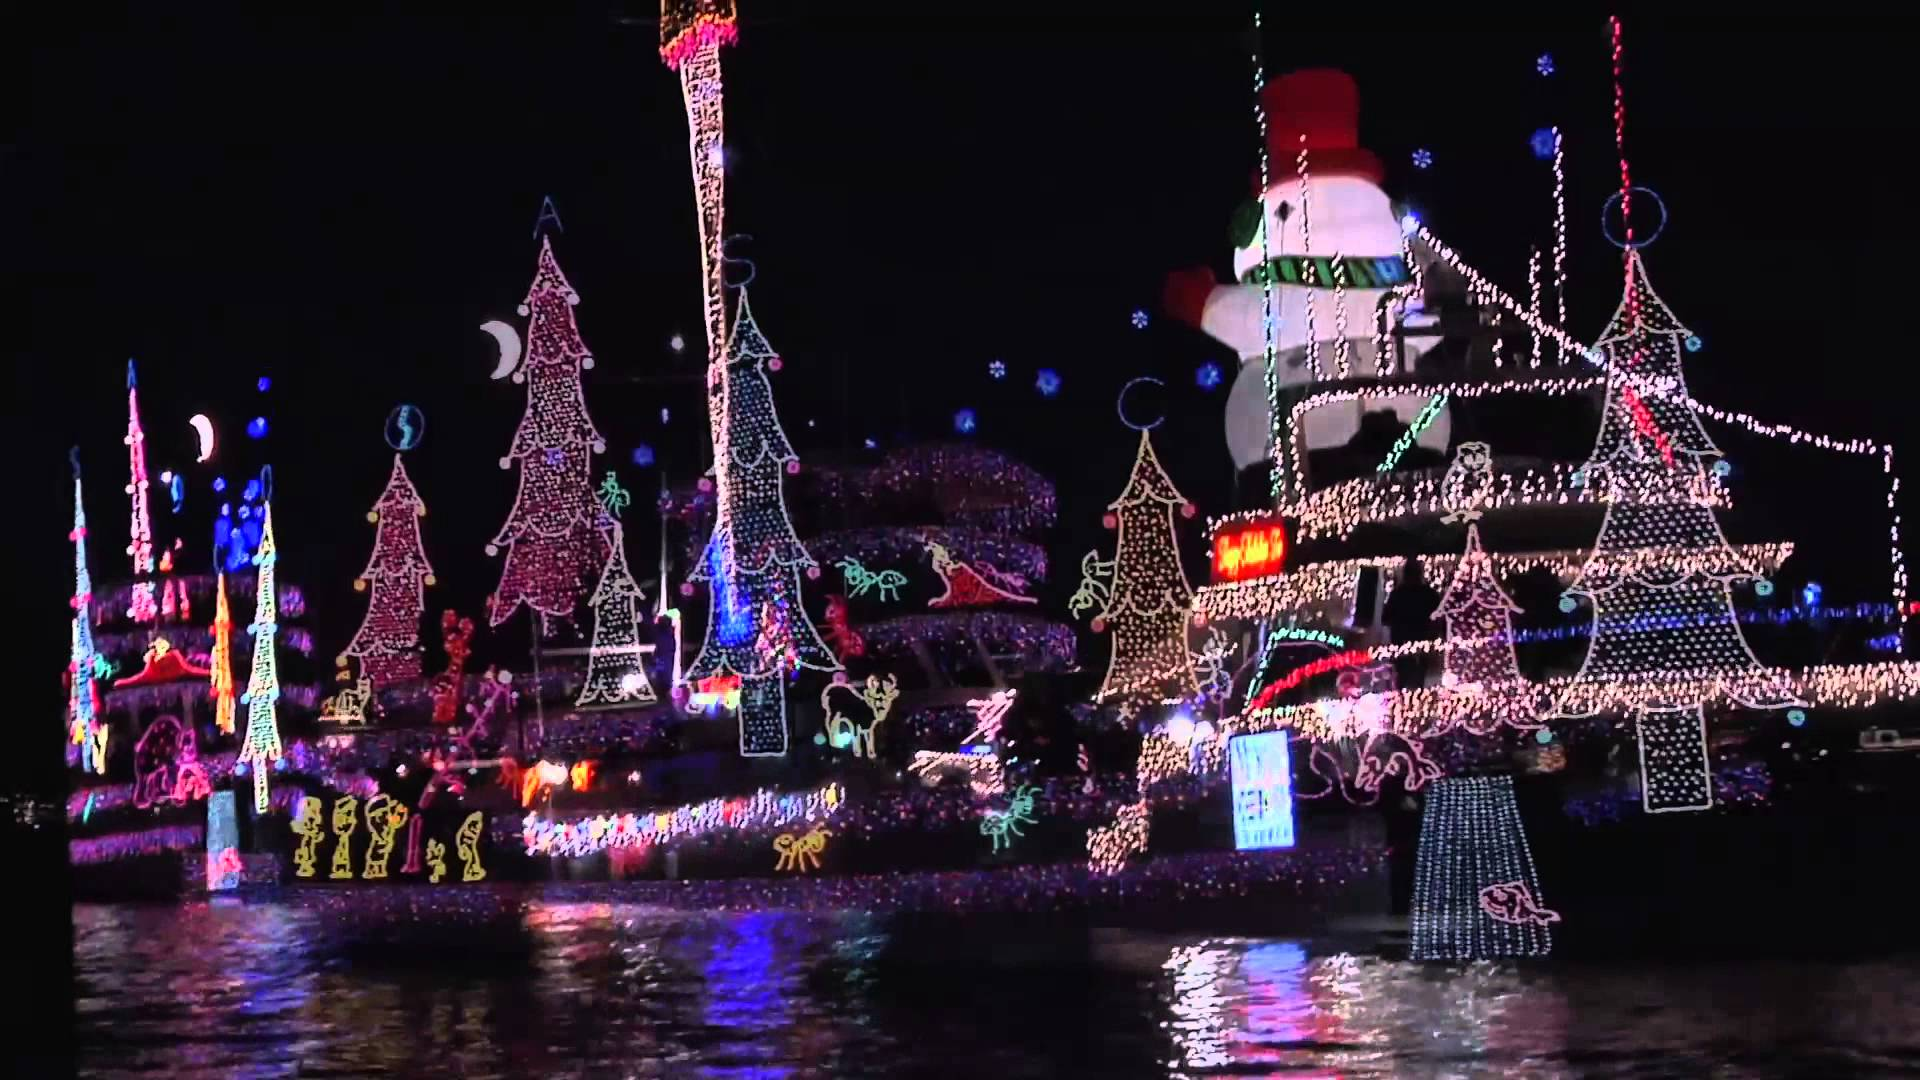 Where To See Some Of The Best Christmas Light Displays In O C